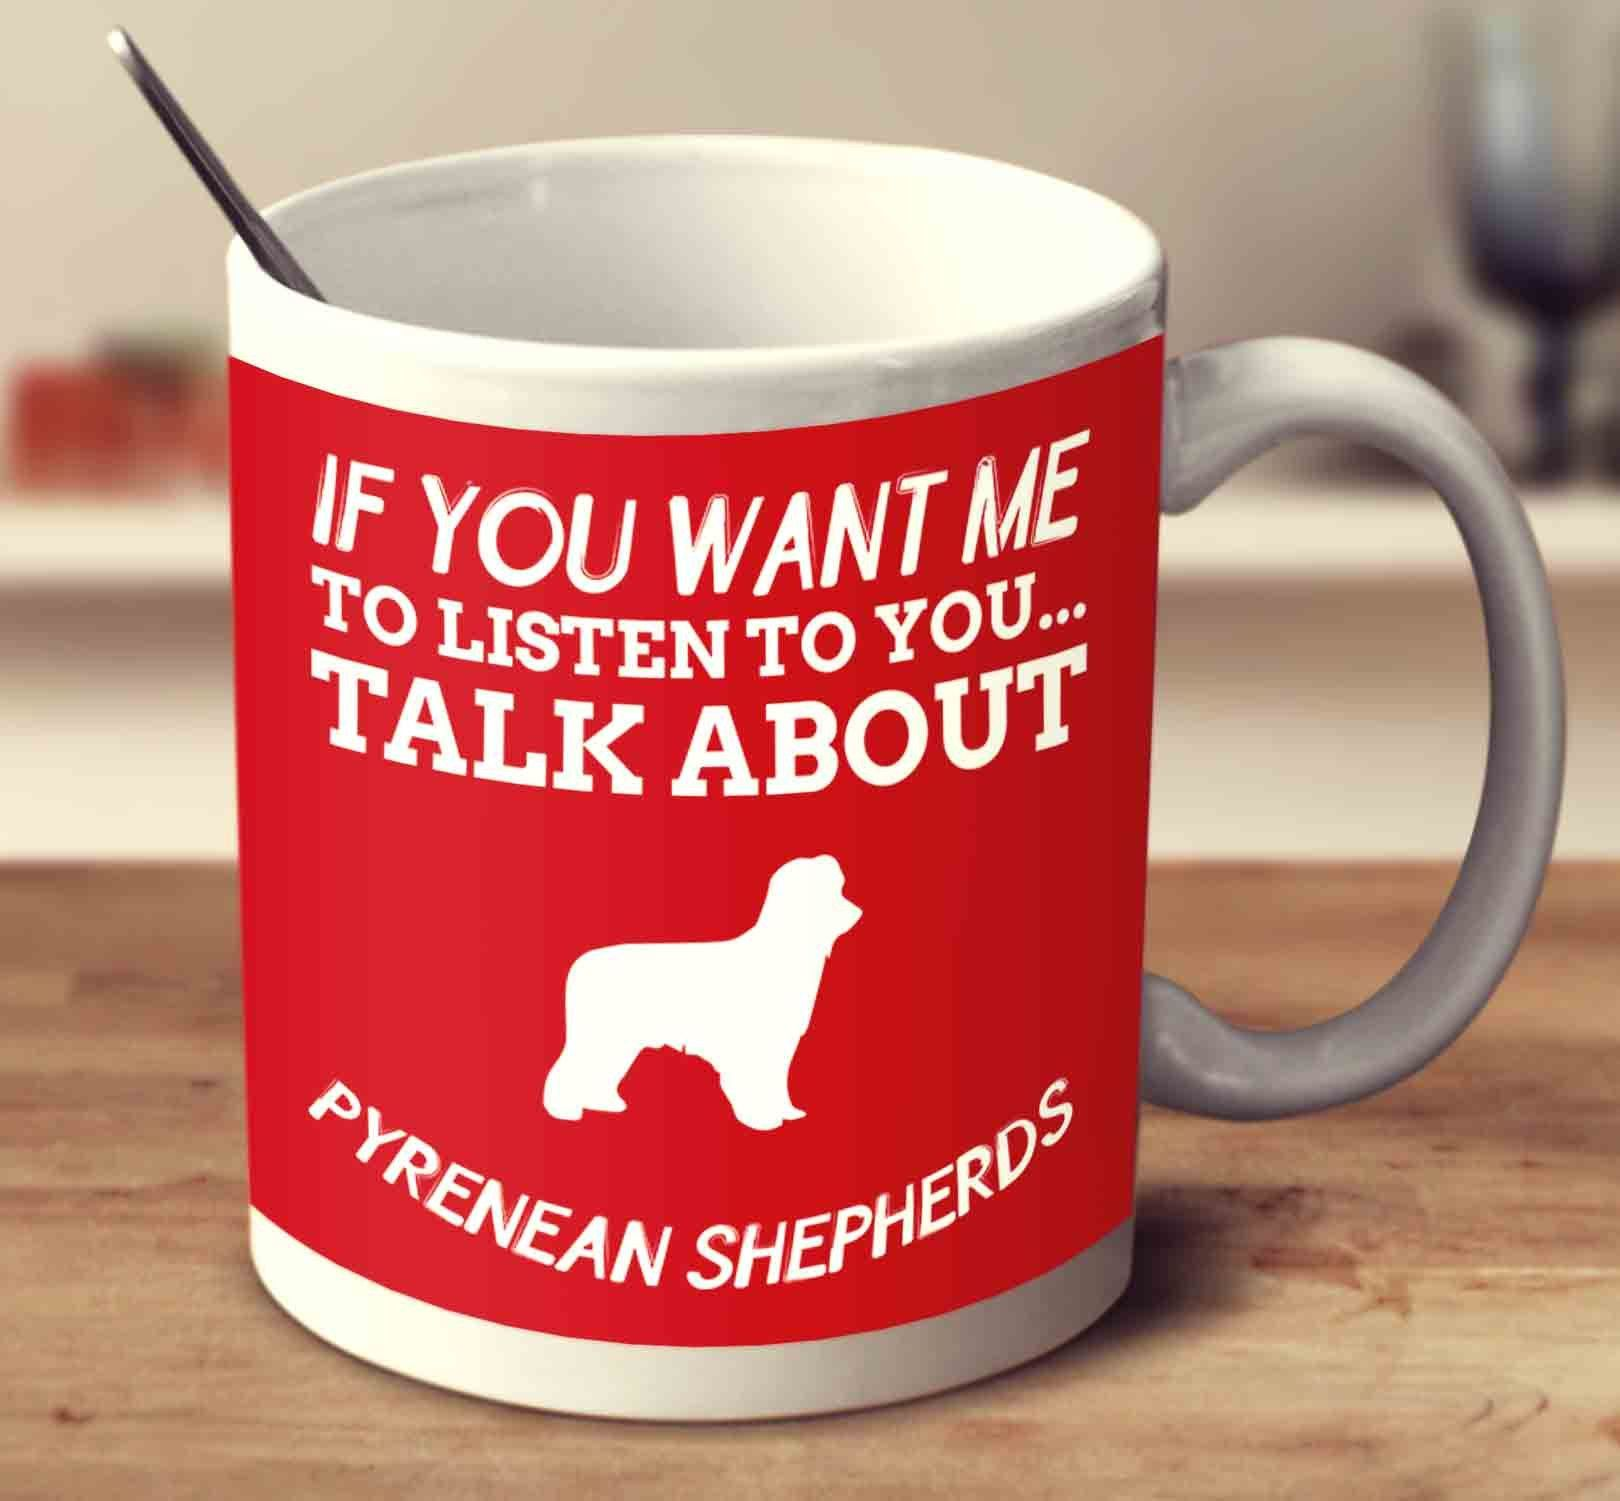 If You Want Me To Listen To You Talk About Pyrenean Shepherds